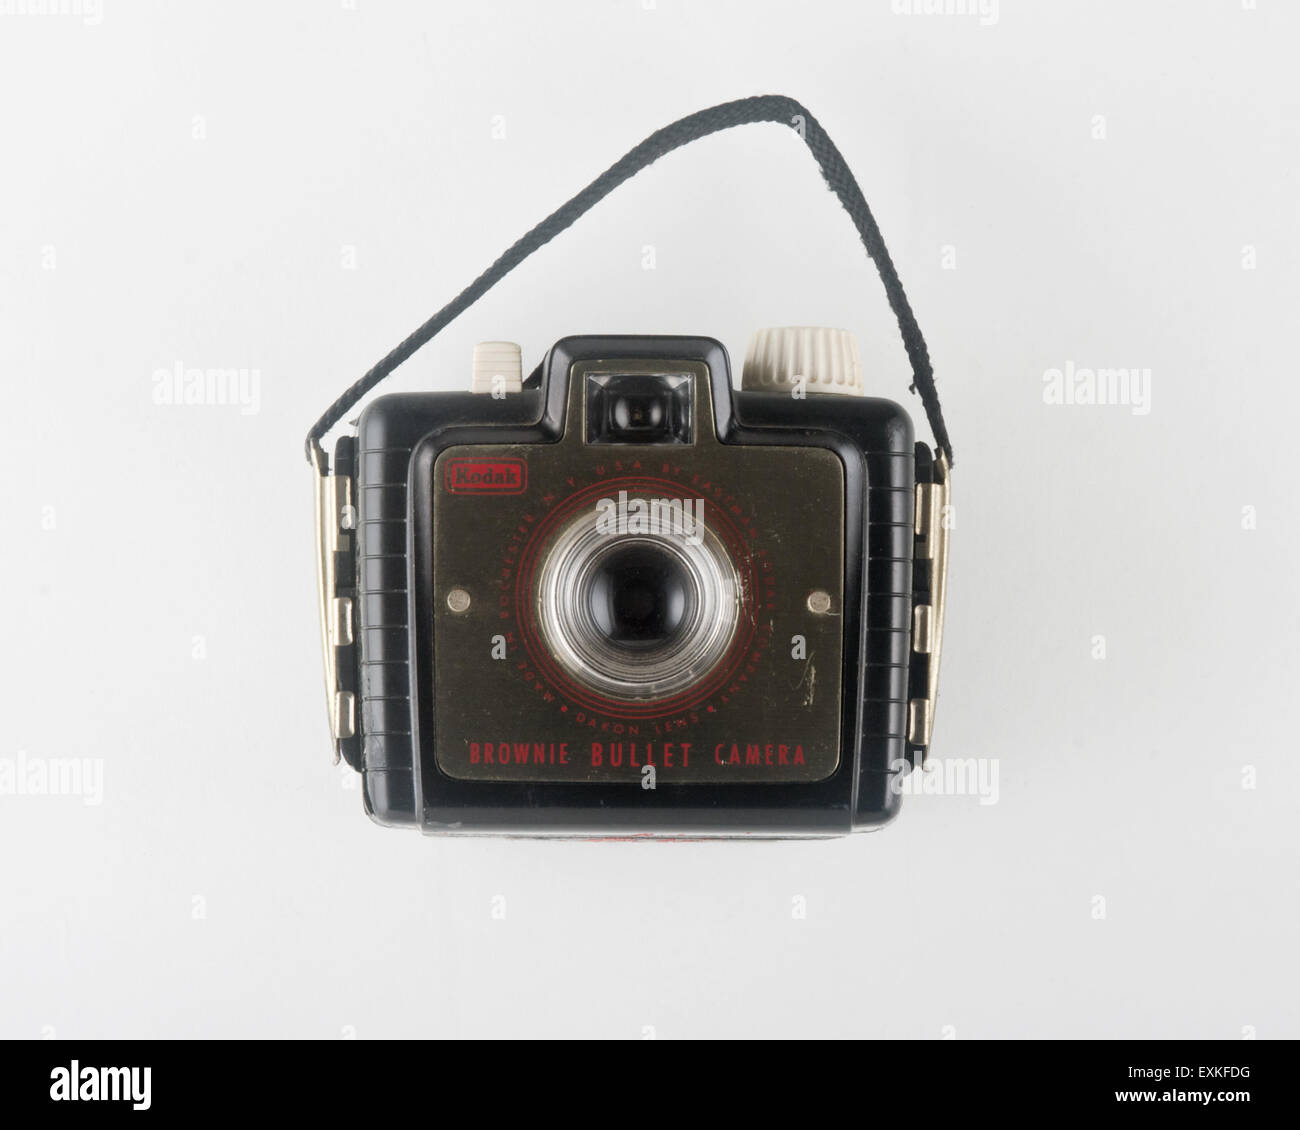 Block out photo of a Kodak Brownie Bullet camera. - Stock Image